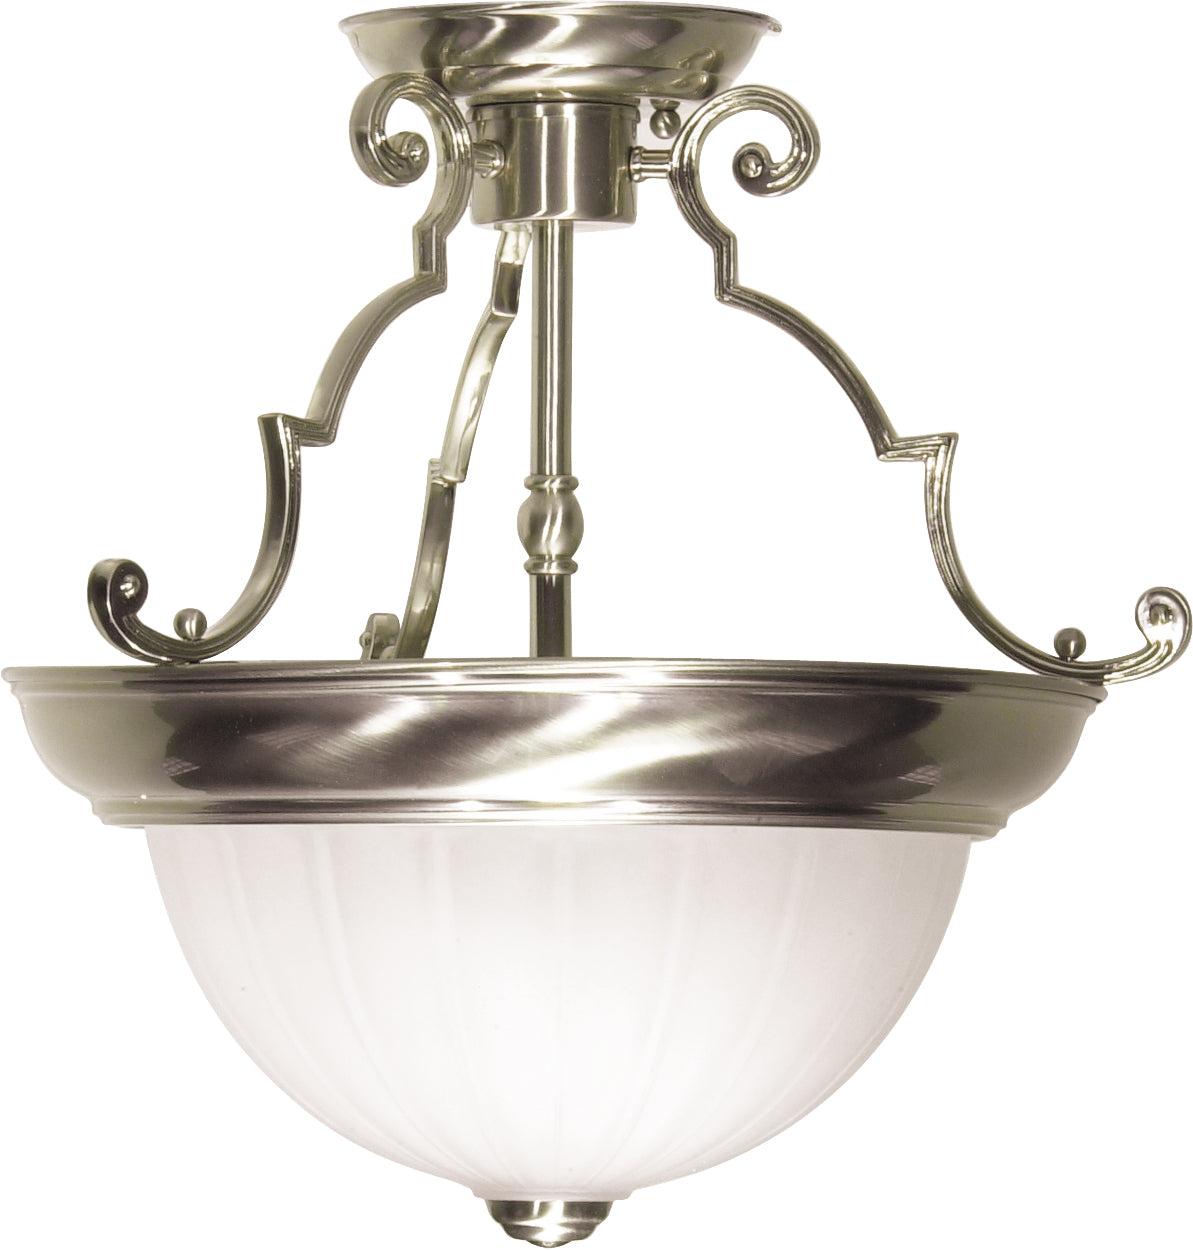 "2-Light 13"" Flush Mounted Light Fixture in Brushed Nickel Finish"